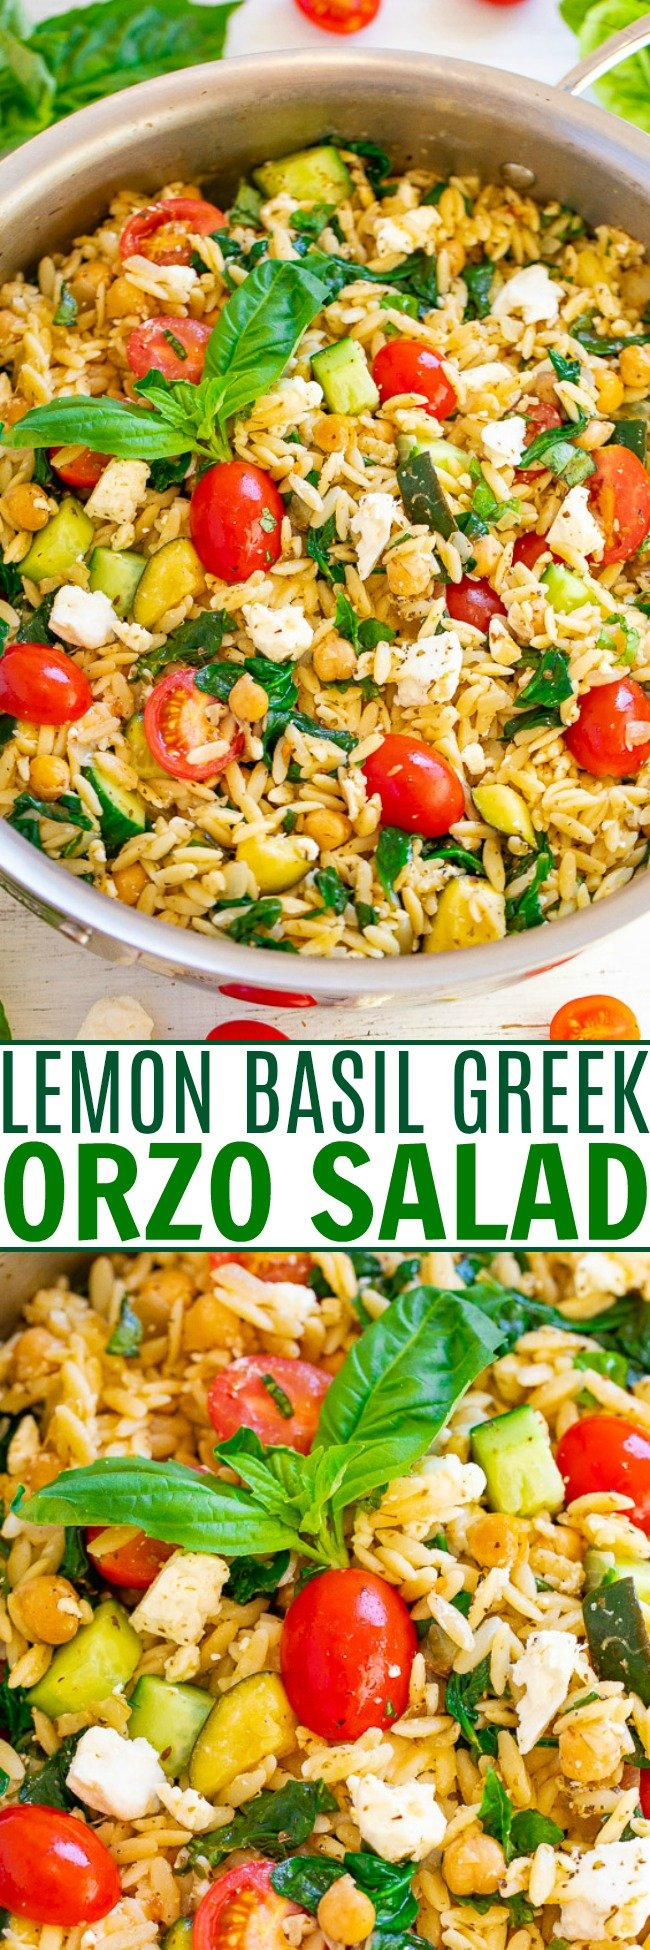 Lemon Basil Greek Orzo Salad - EASY, ready in 25 minutes, and lemon and basil give it such a FRESH taste!! Feeds a crowd, great for parties, picnics, and potlucks! Or perfect for meal prep weekday lunches and HEALTHY dinners!!